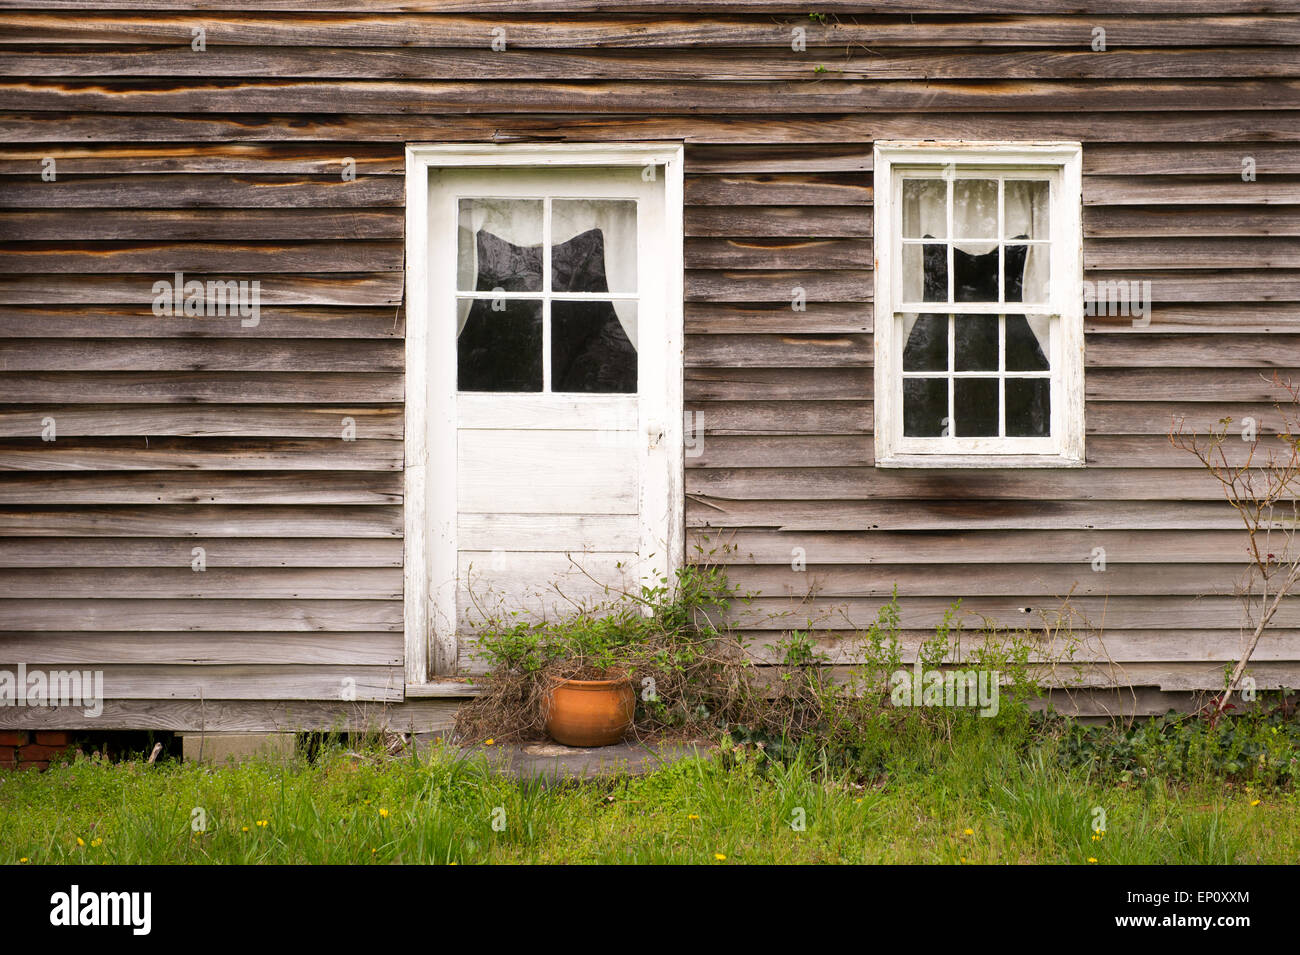 Close-up of house with old wooden siding and white painted door and window in Chrisfield, Maryland - Stock Image